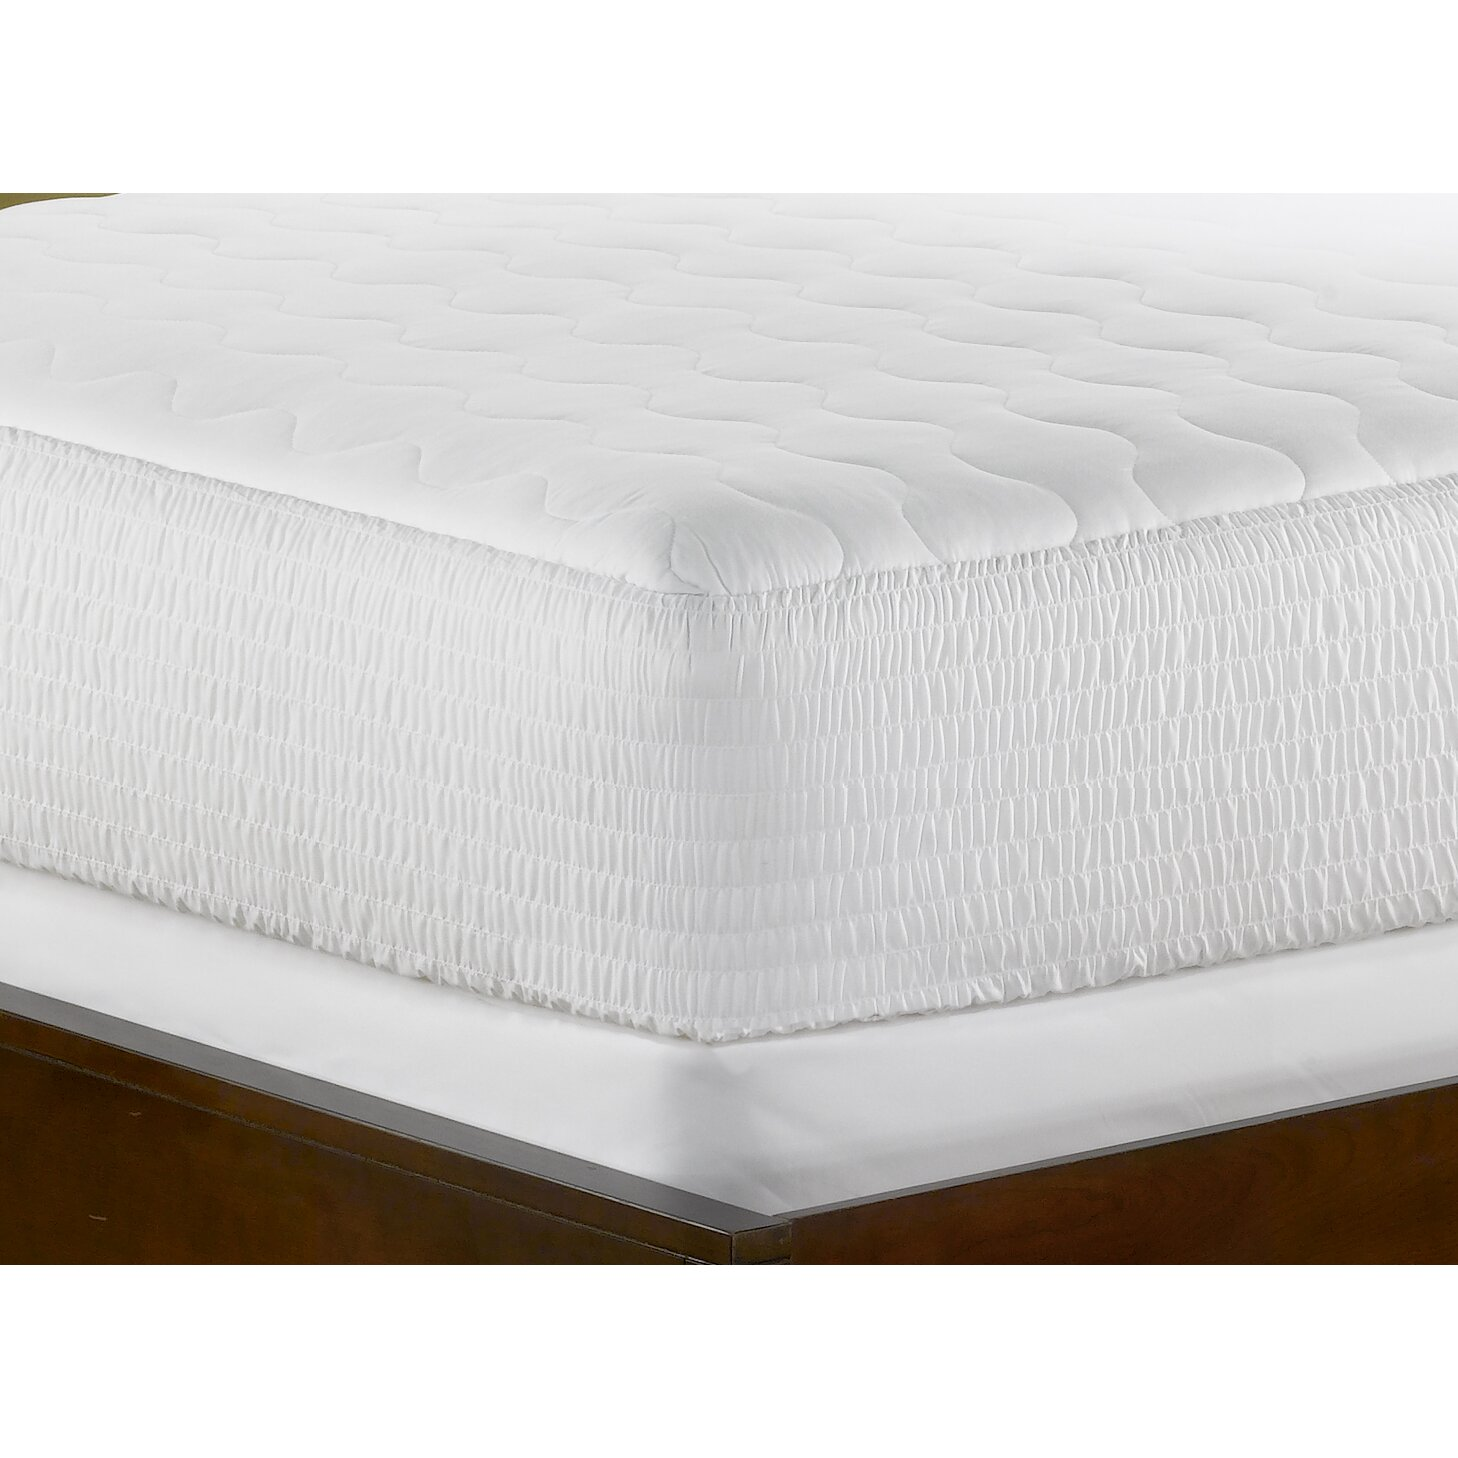 Simmons Beautyrest Odor Control Mattress Pad Amp Reviews